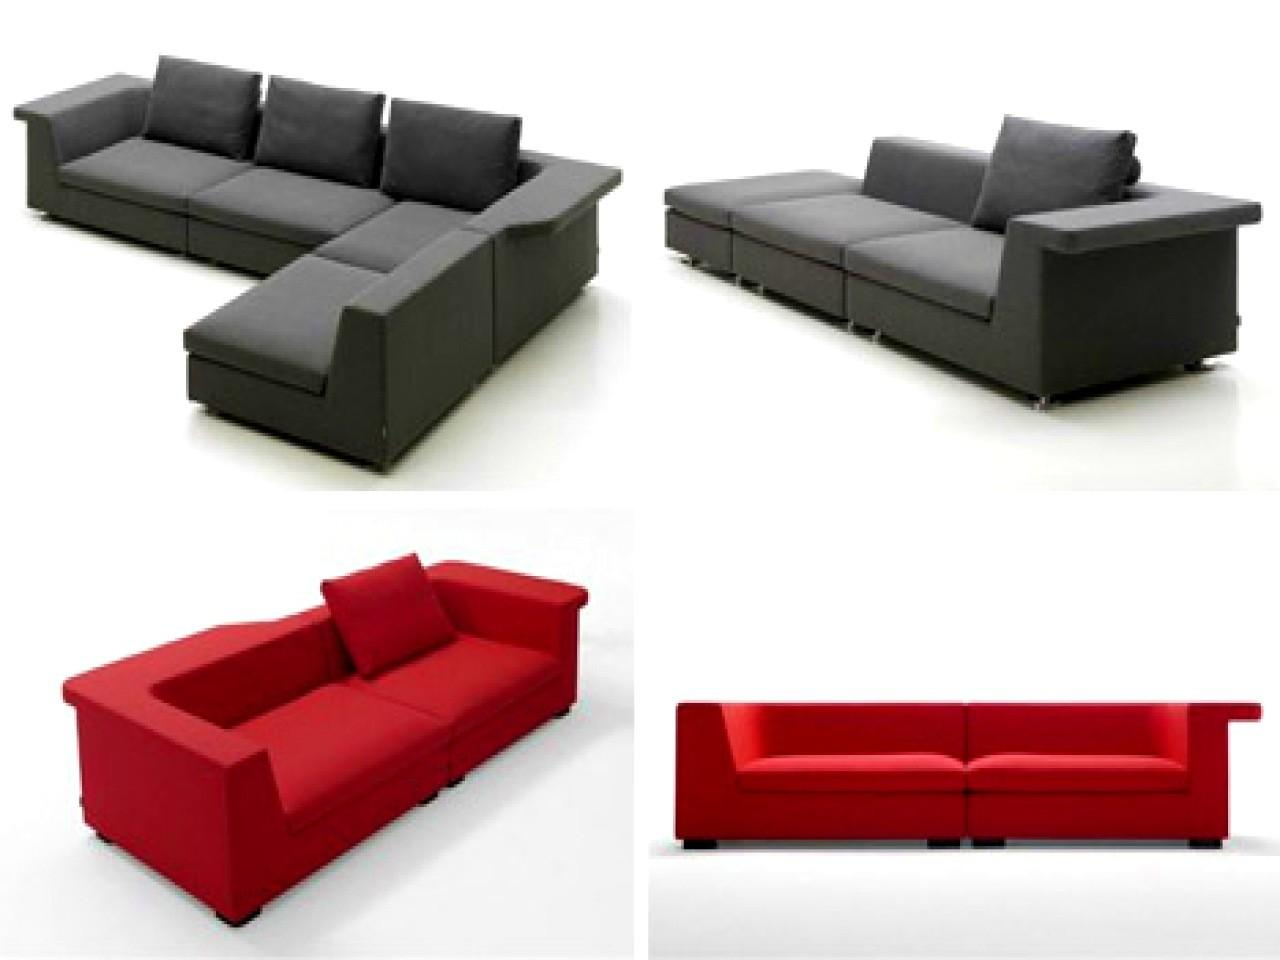 Uncategorized Couch Sofa Difference